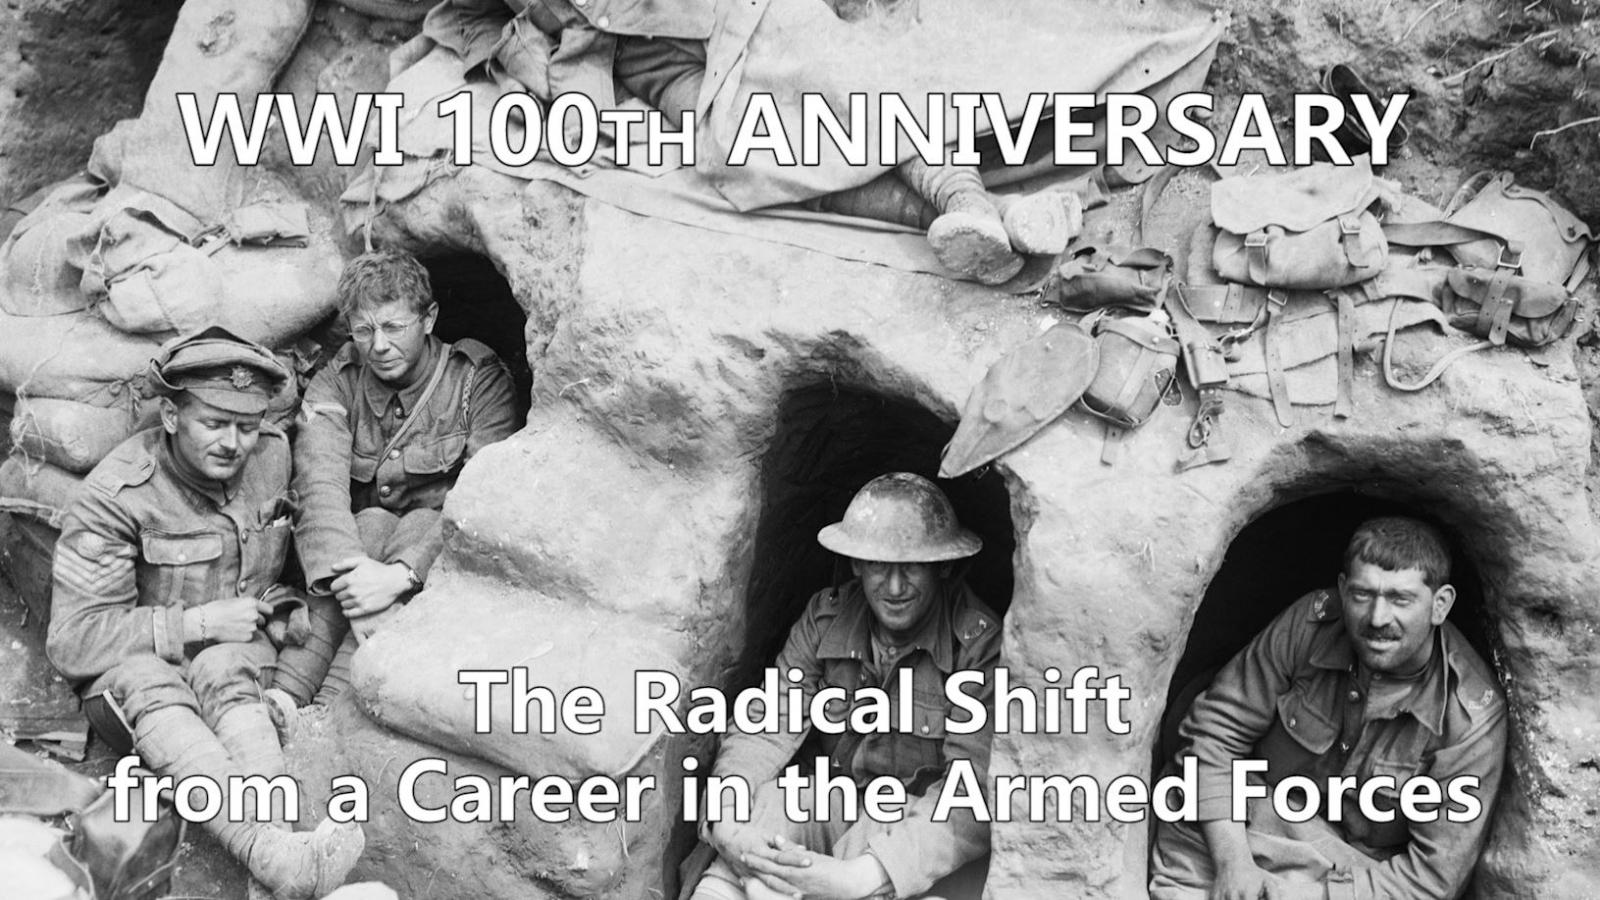 WWI 100th Anniversary: The Radical Shift from a Career in the Armed Forces